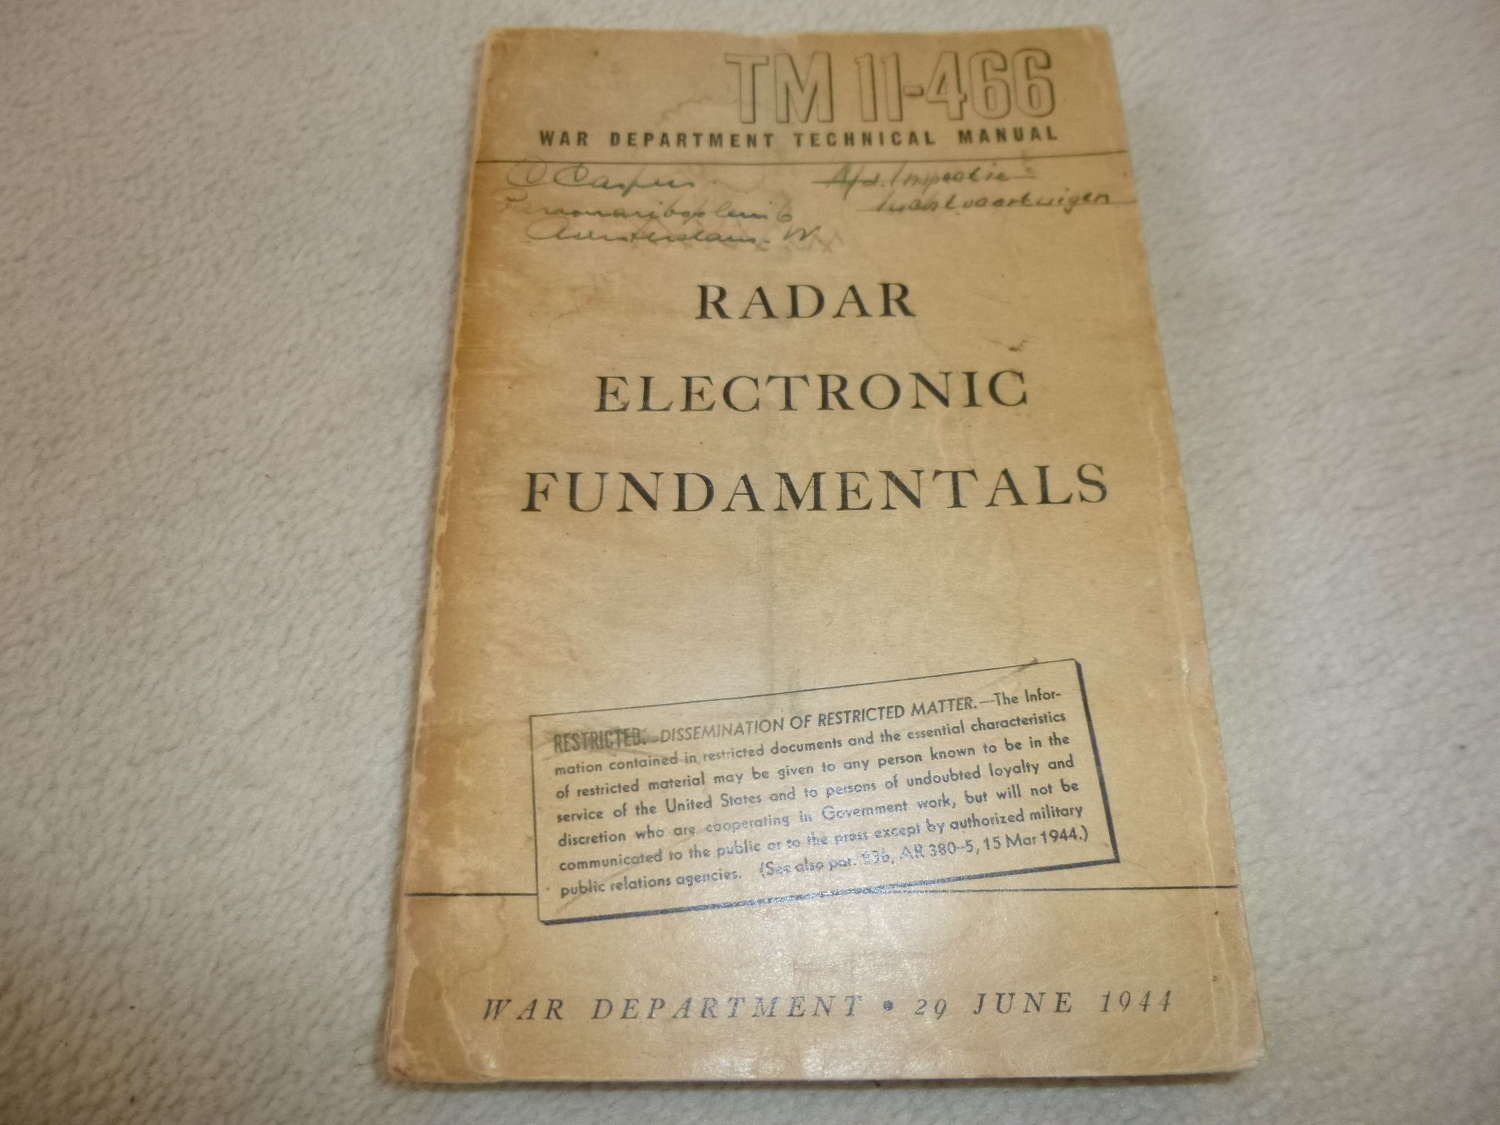 US Army TM11-466 Radar Electronic Fundamentals Manual